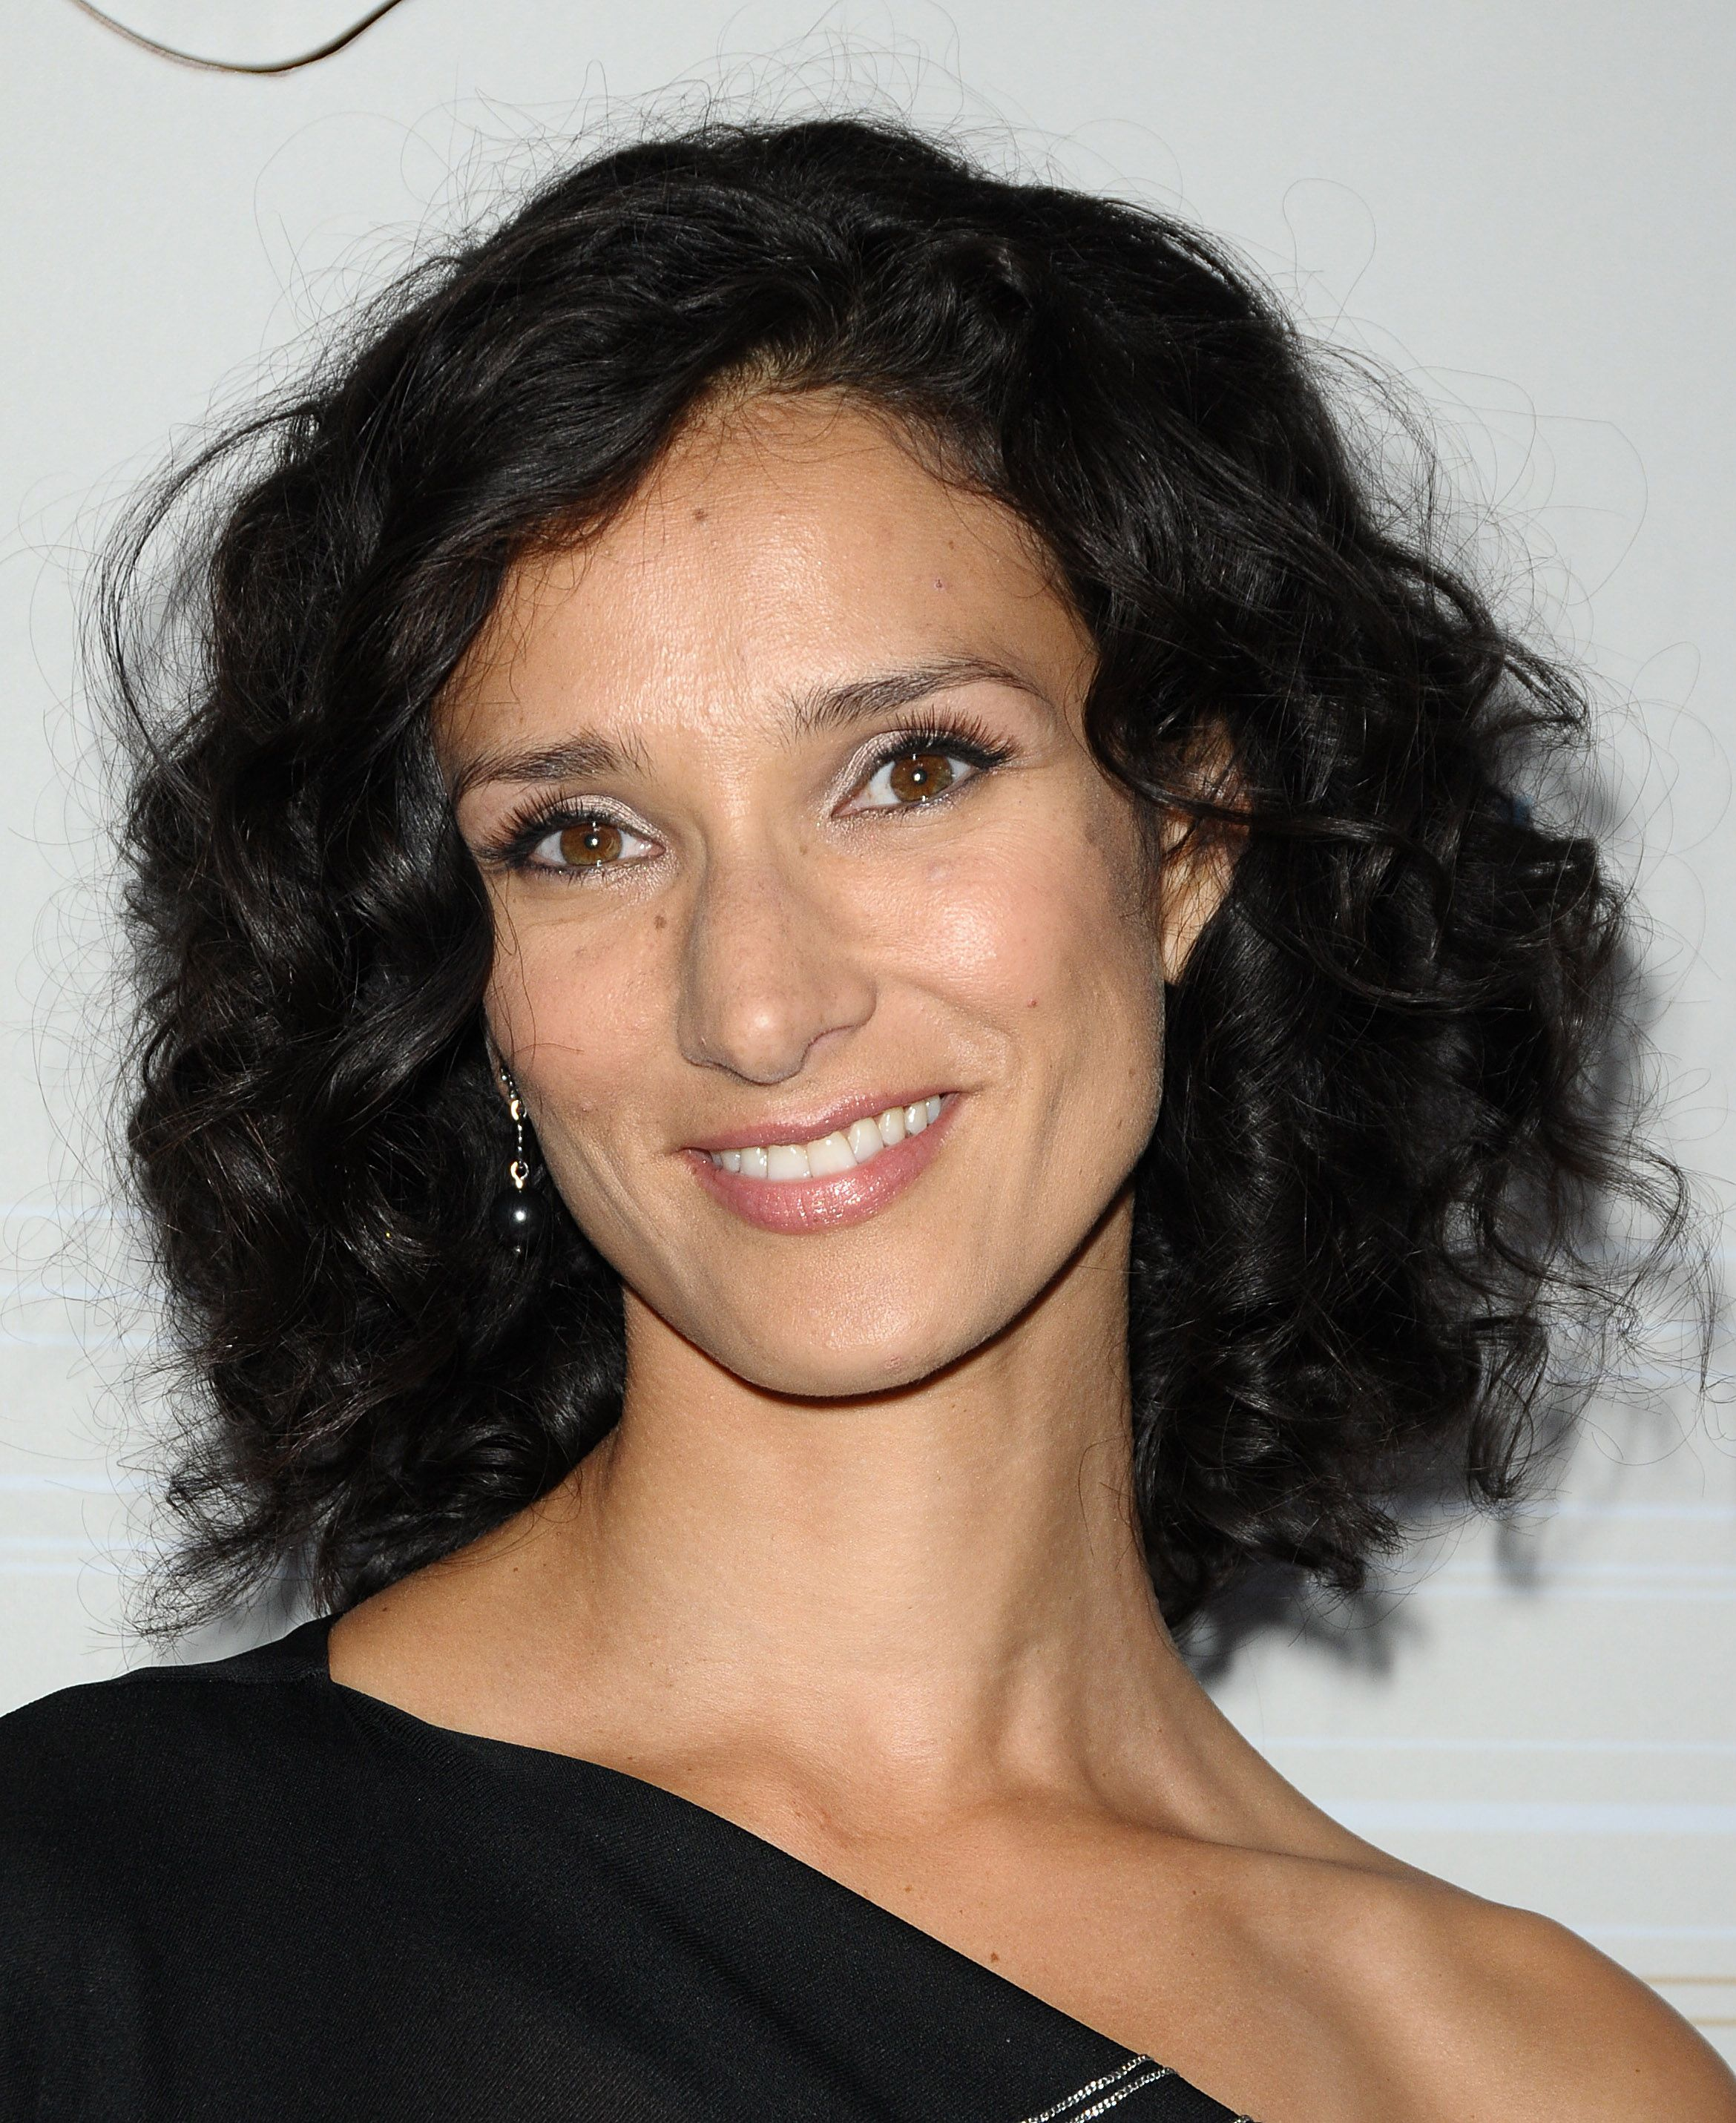 Game of Thrones Star Indira Varma Tests Positive For